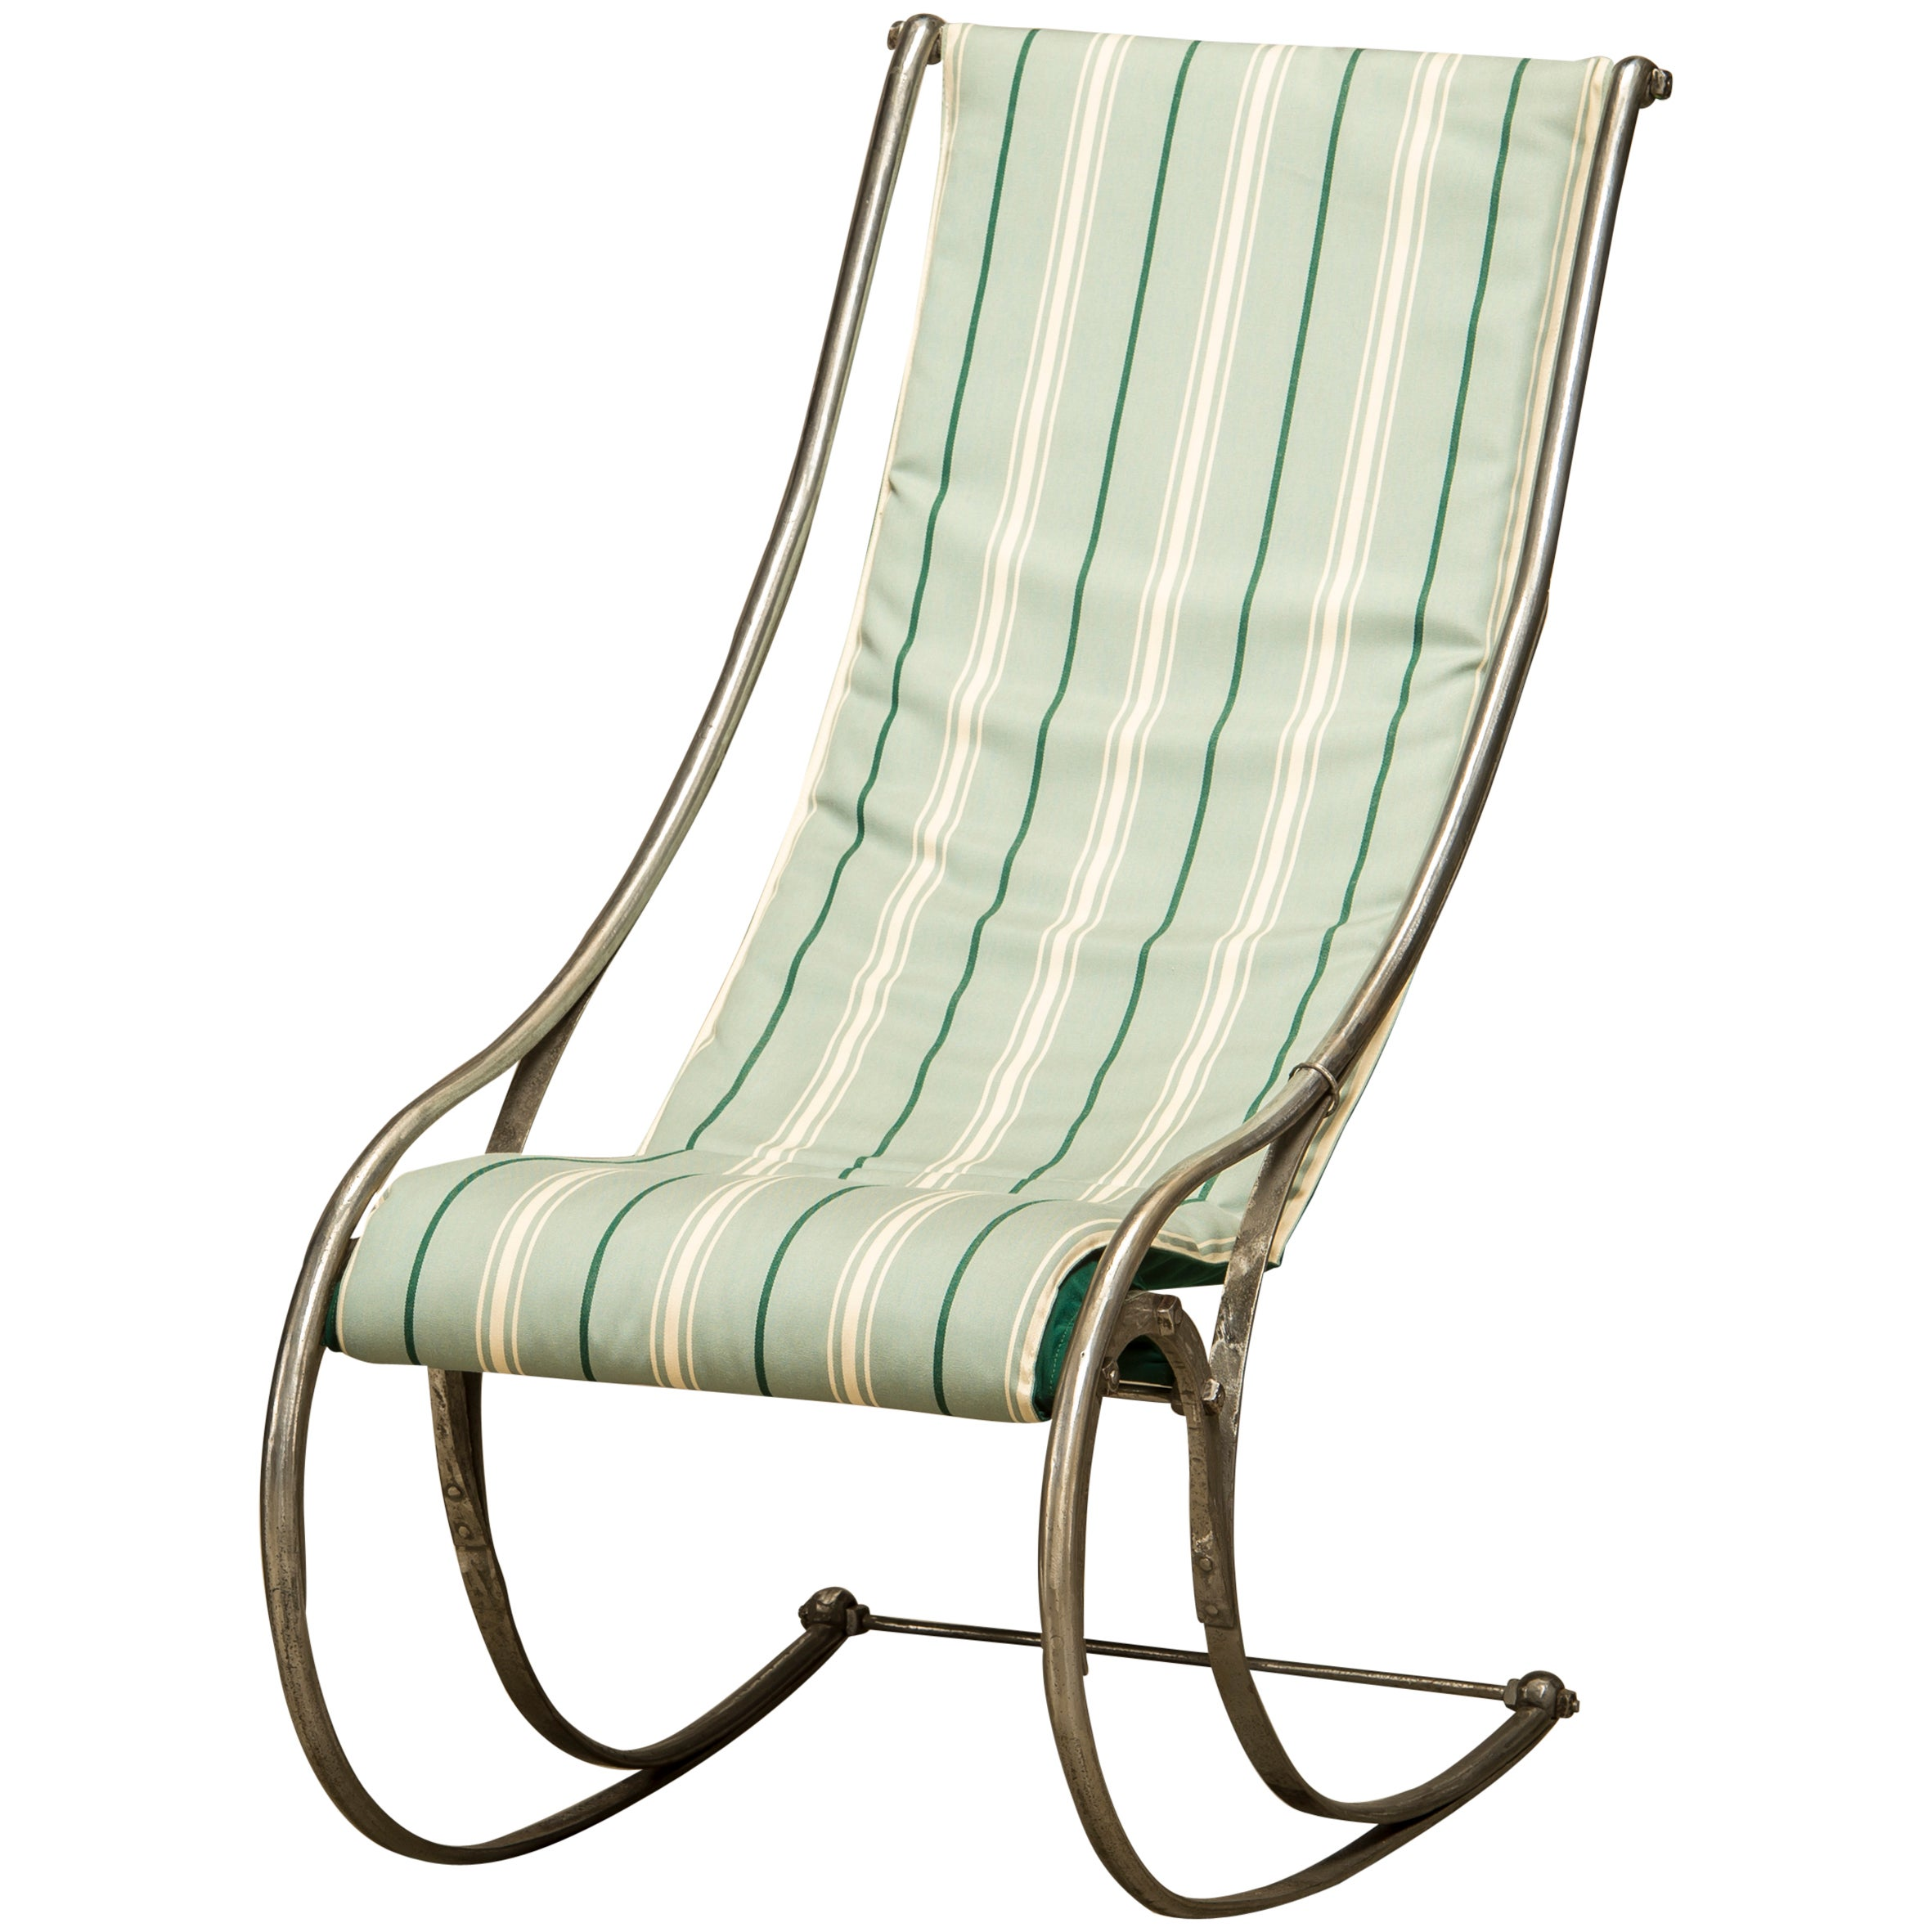 Mid-19th Century H.C. Andersen Rocking Chair in Polished Cast Iron